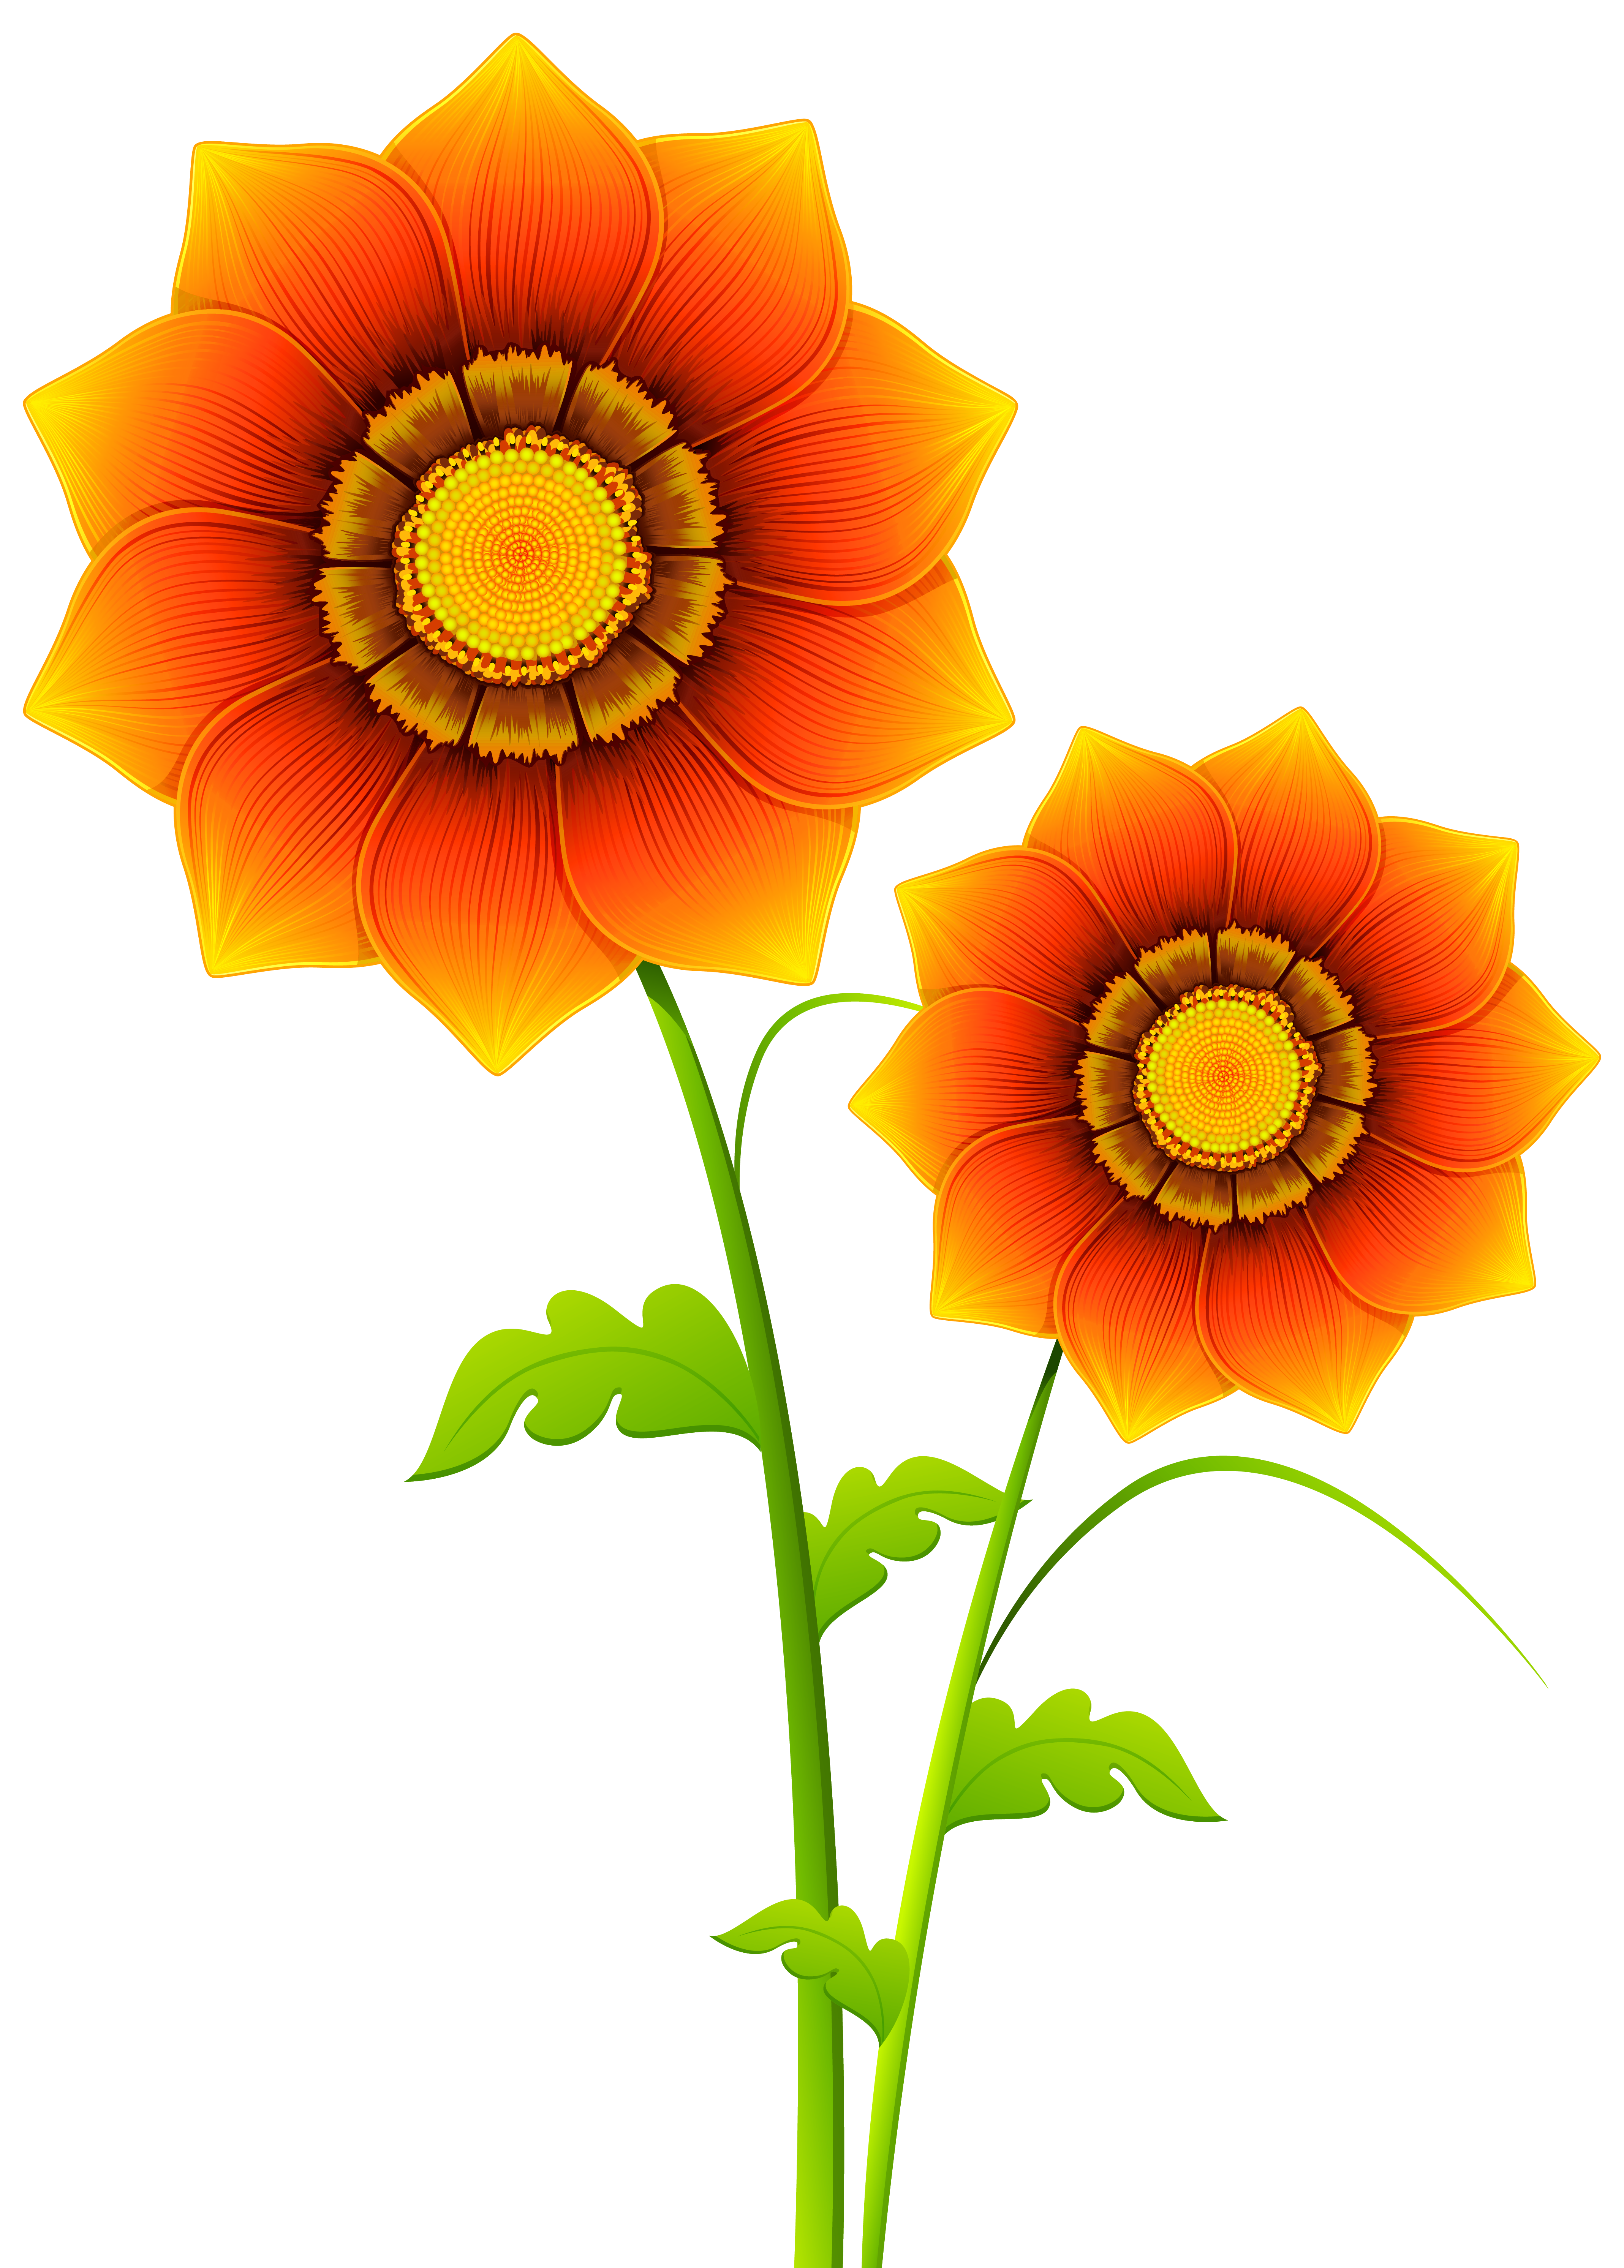 Transparent flower clipart image library Transparent Flowers Clipart PNG Image | Gallery Yopriceville - High ... image library